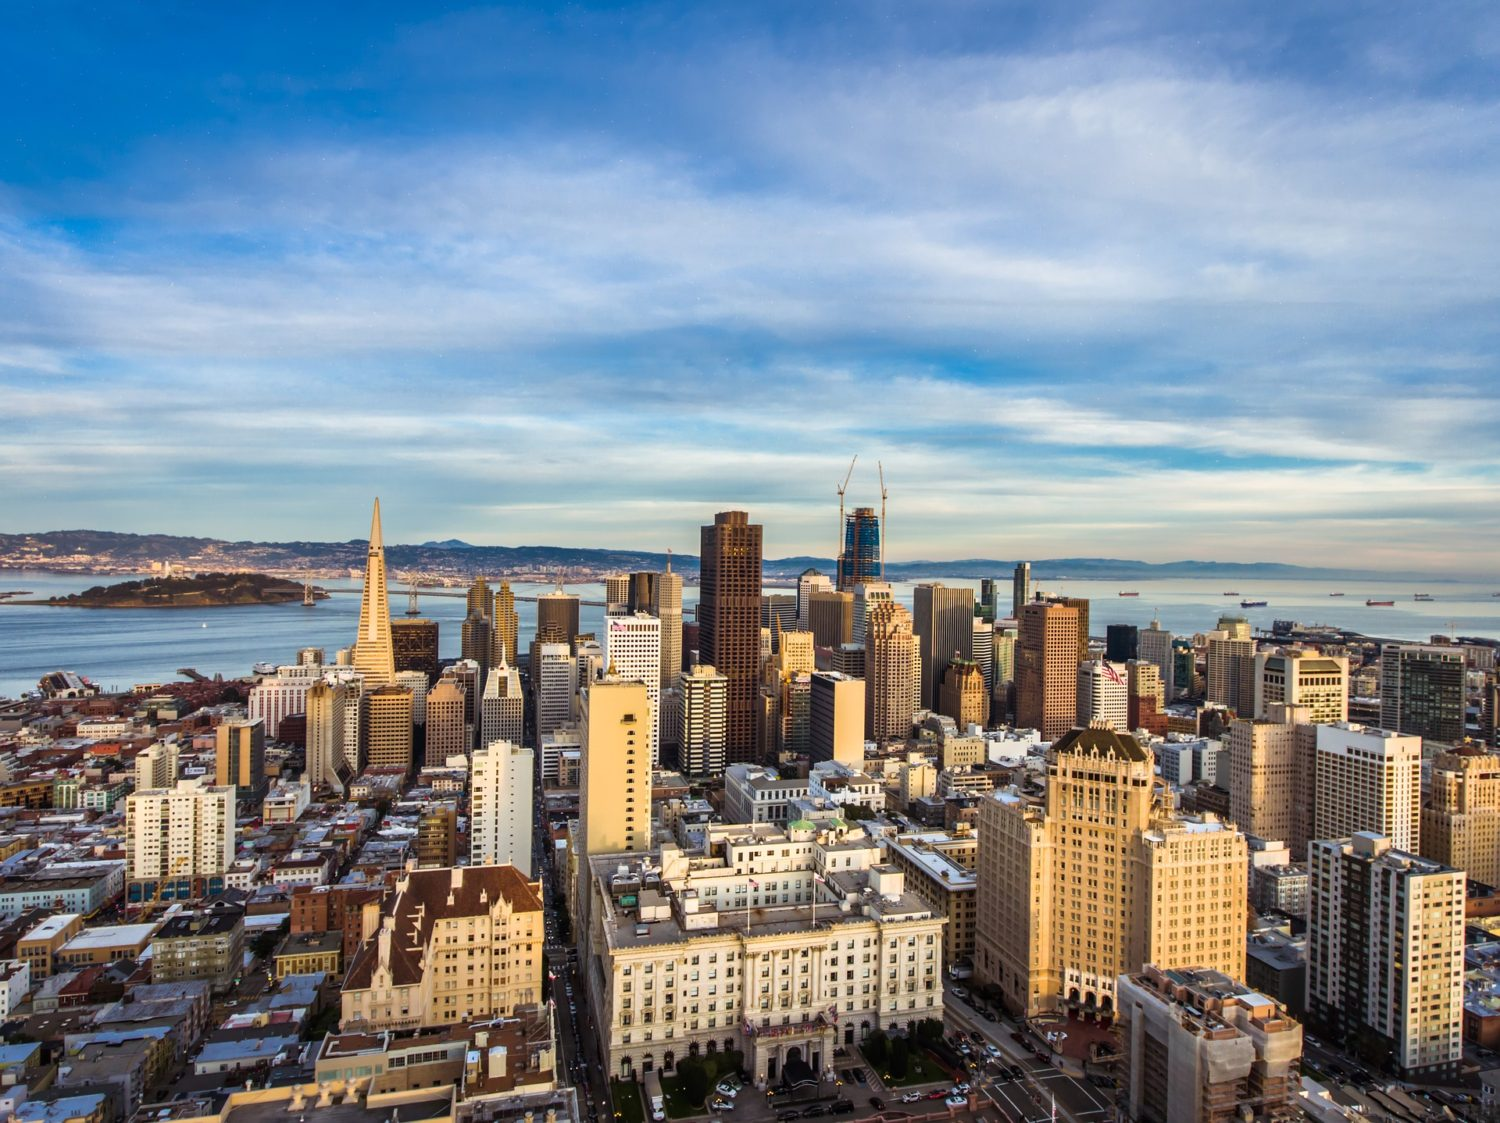 San Francisco, California skyline